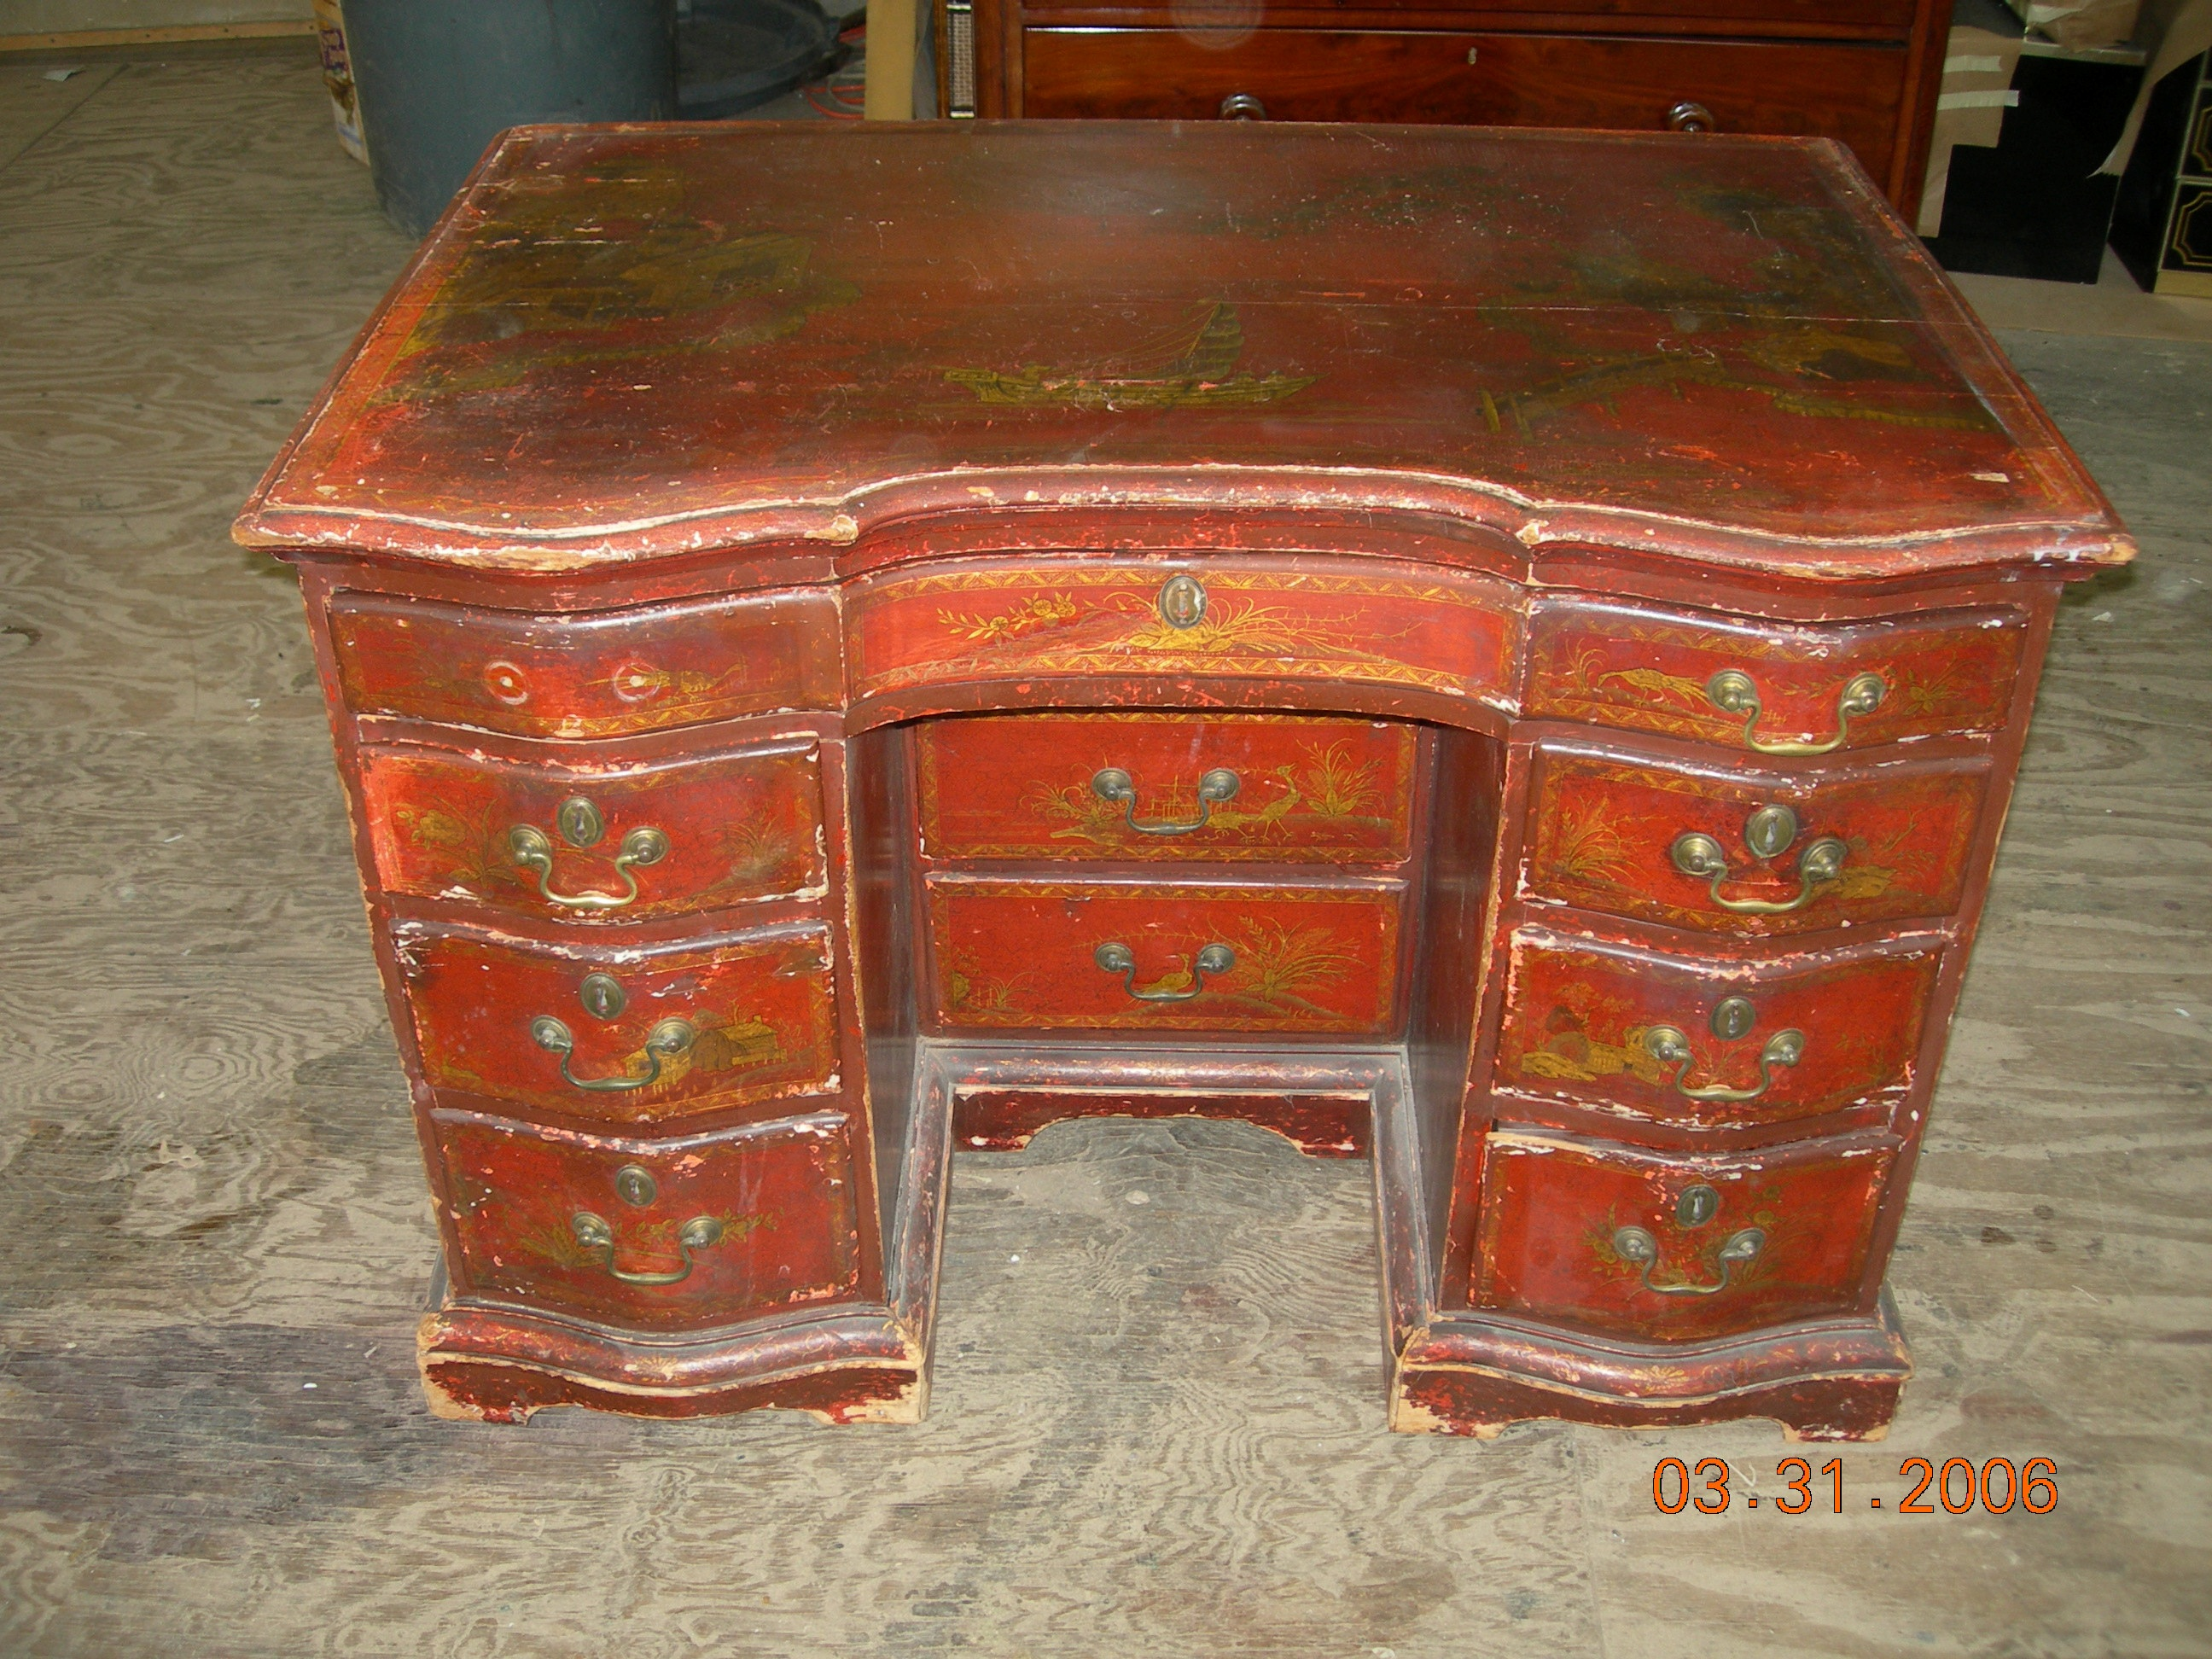 Antique furniture conservationrepair Gilding Lacquer